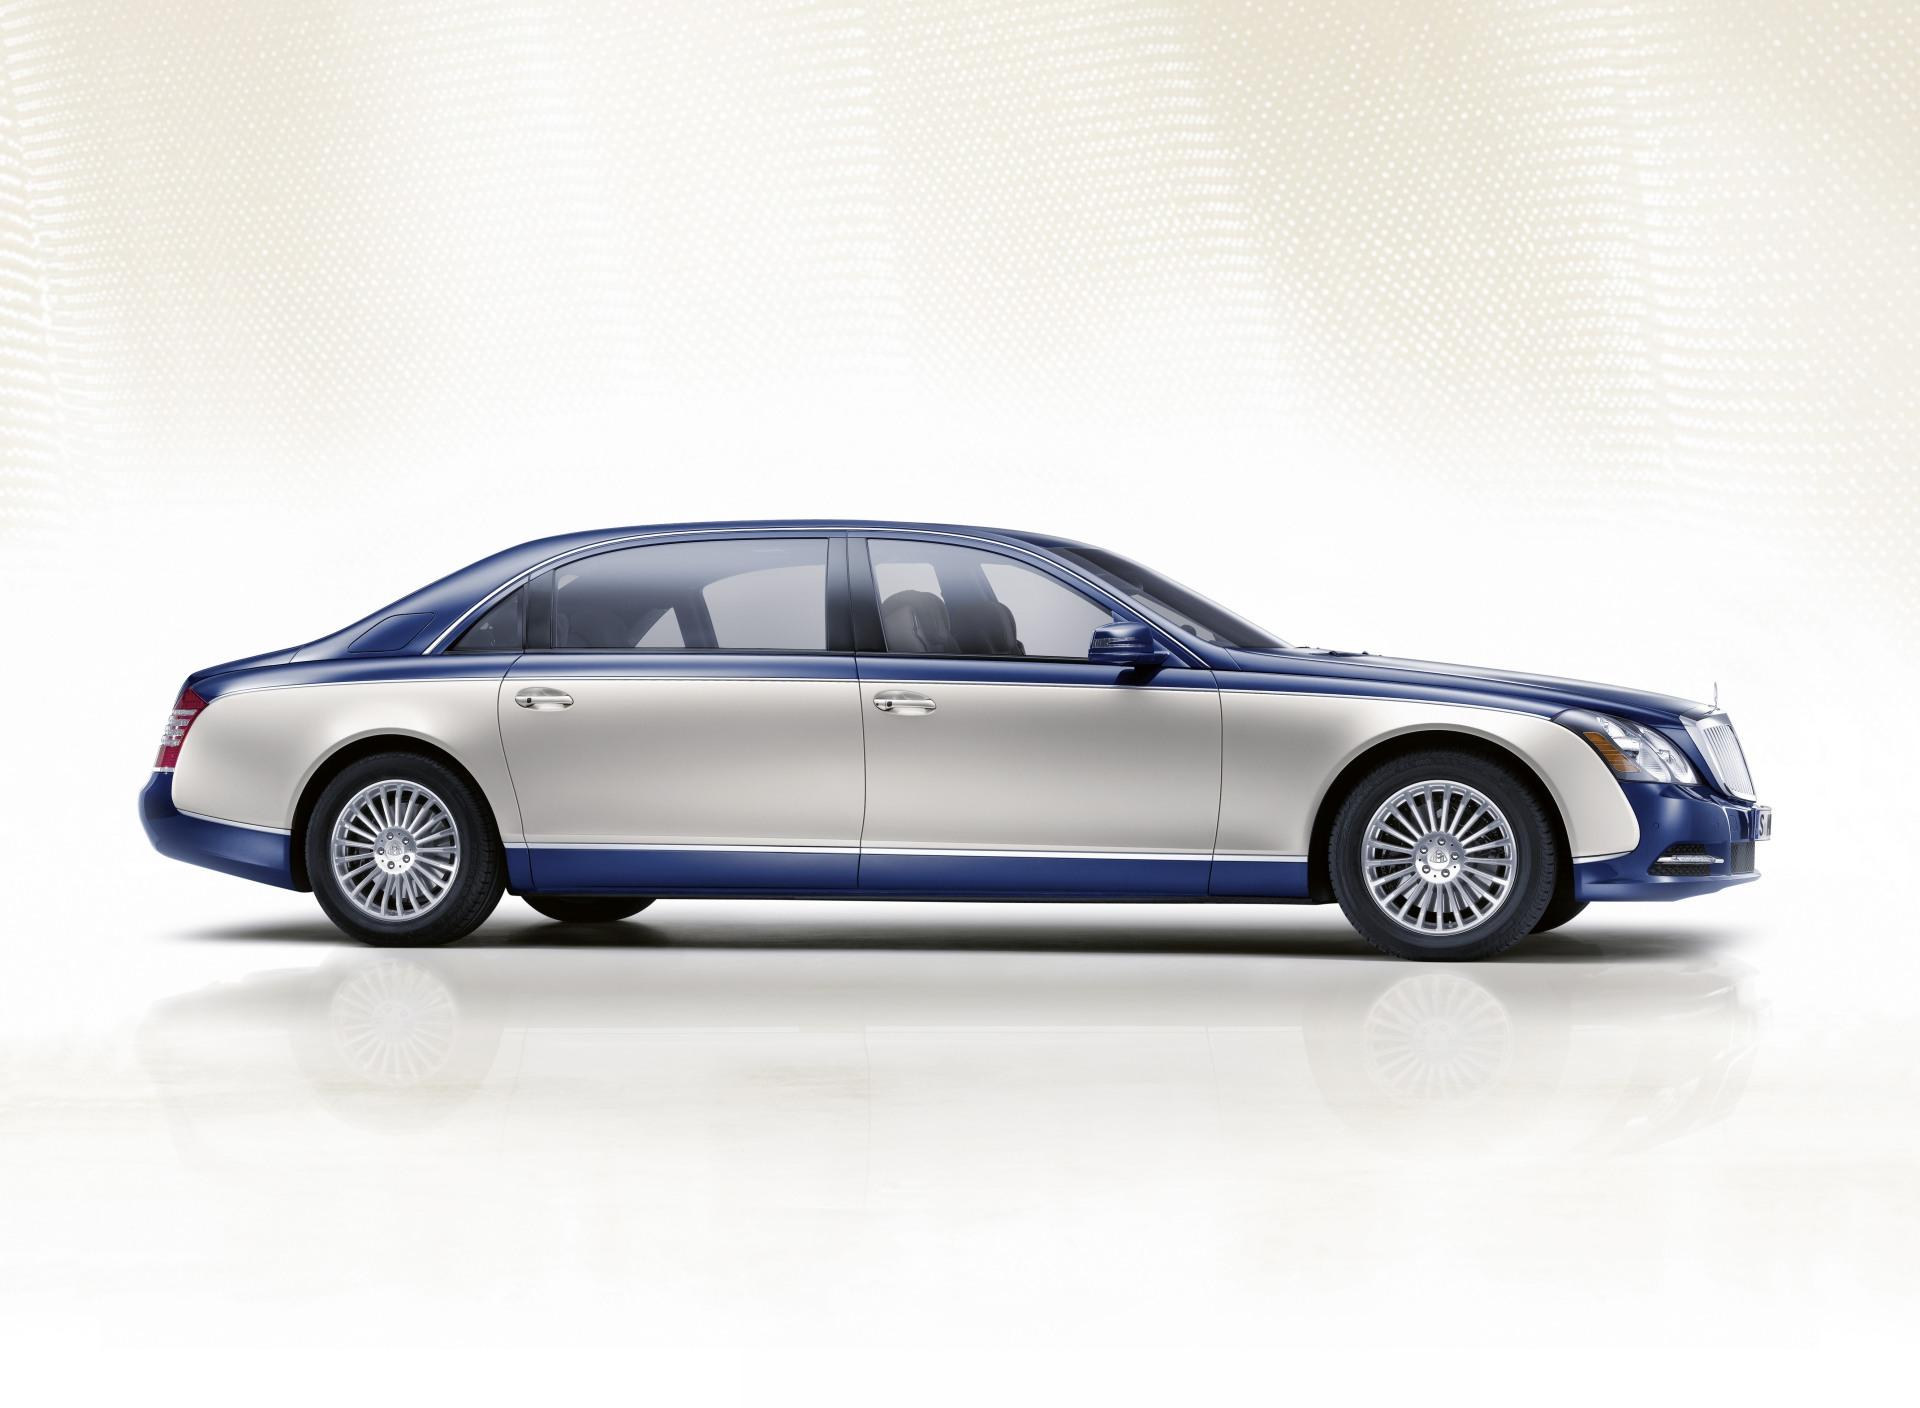 Toyota Of Pullman >> 2011 Maybach 62 S News and Information - conceptcarz.com